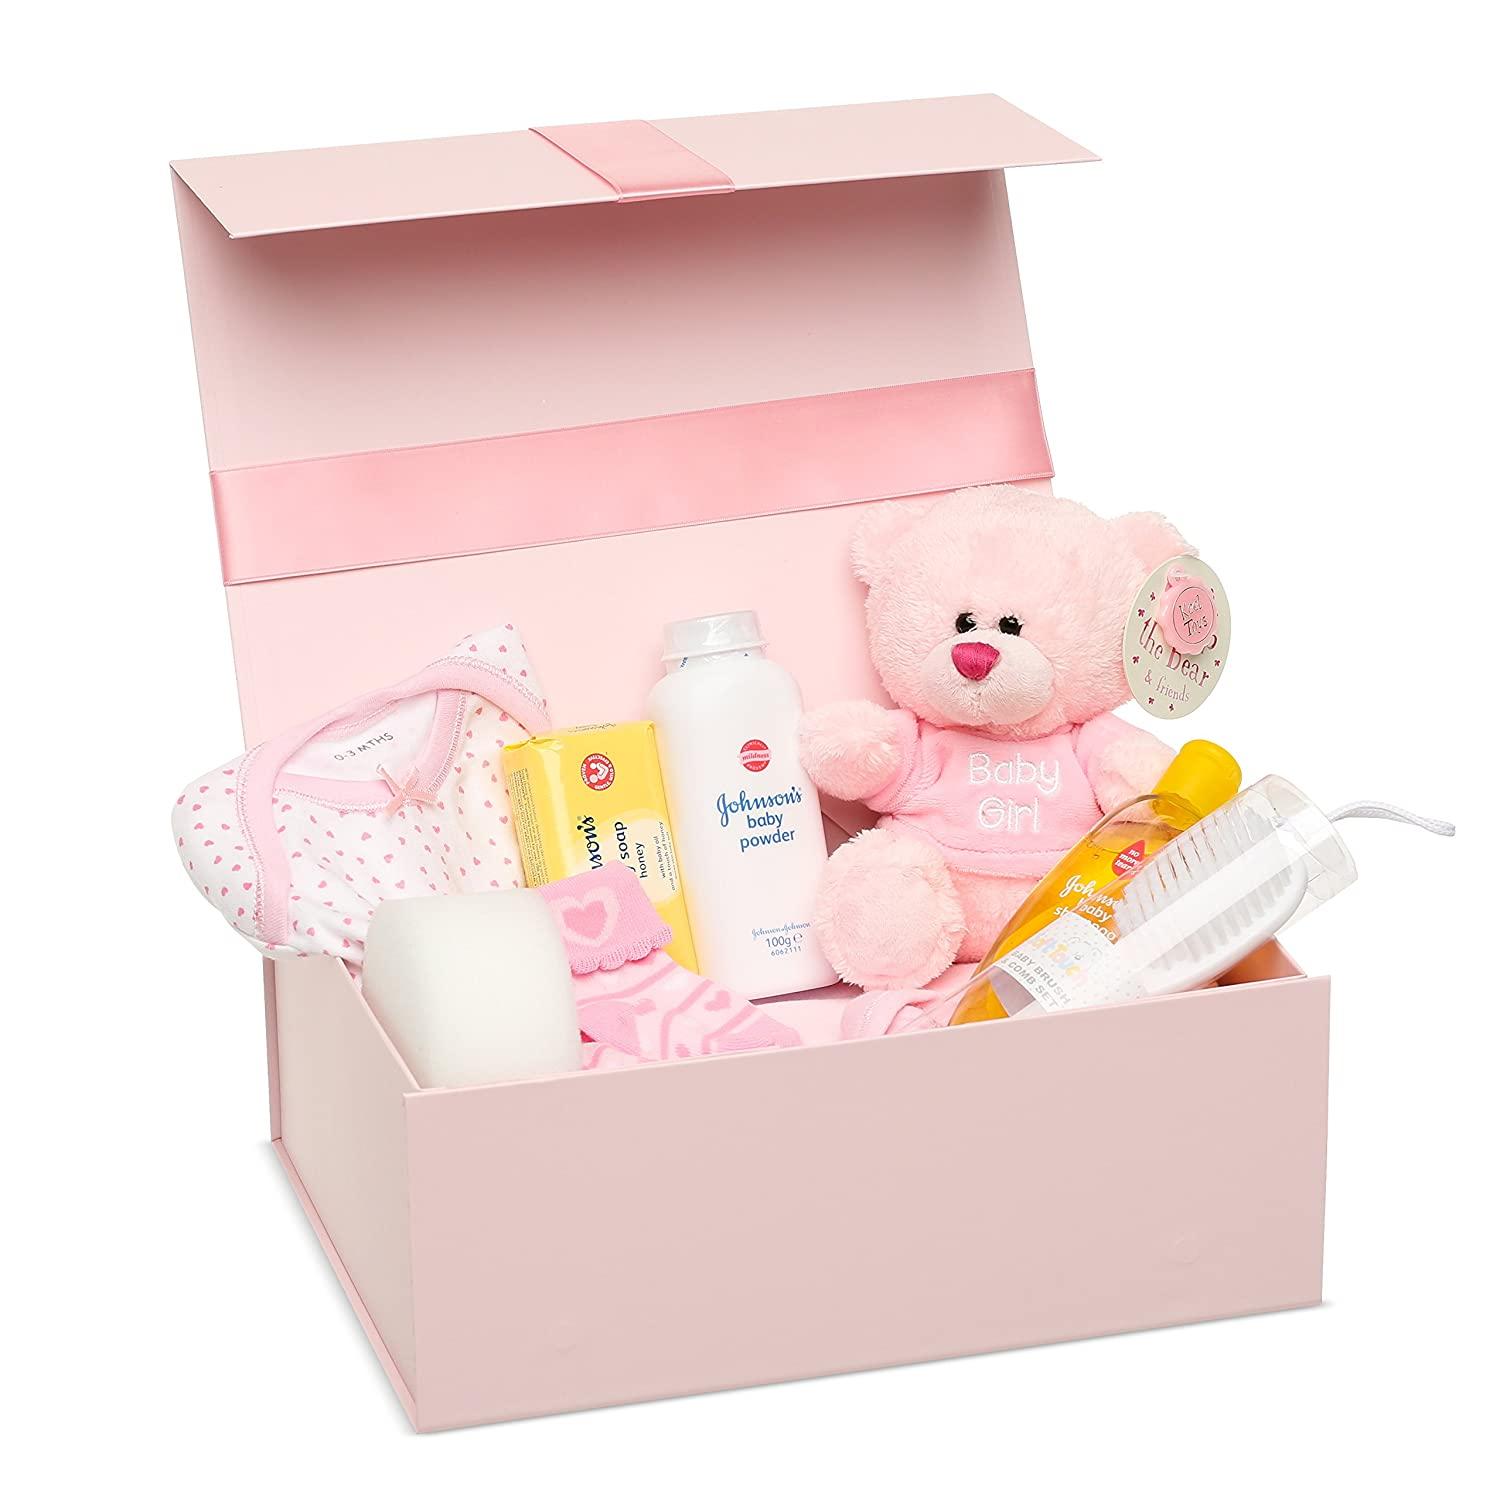 BABY BOX SHOP - Pink Keepsake Box Full of Gifts, Ideal Present for a Baby Shower